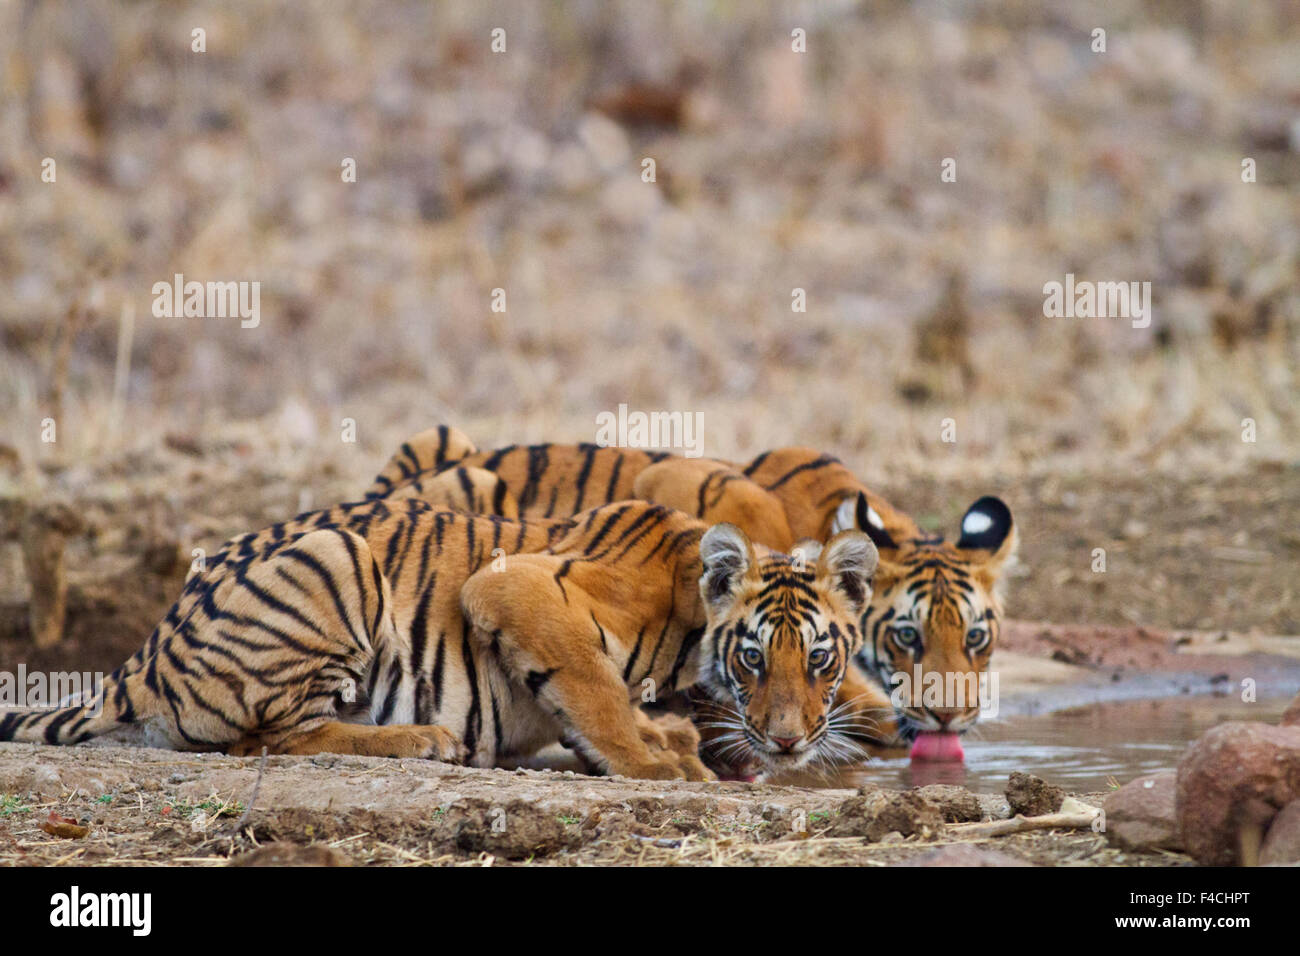 royal bengal tiger Download royal bengal tiger stock photos affordable and search from millions of royalty free images, photos and vectors.